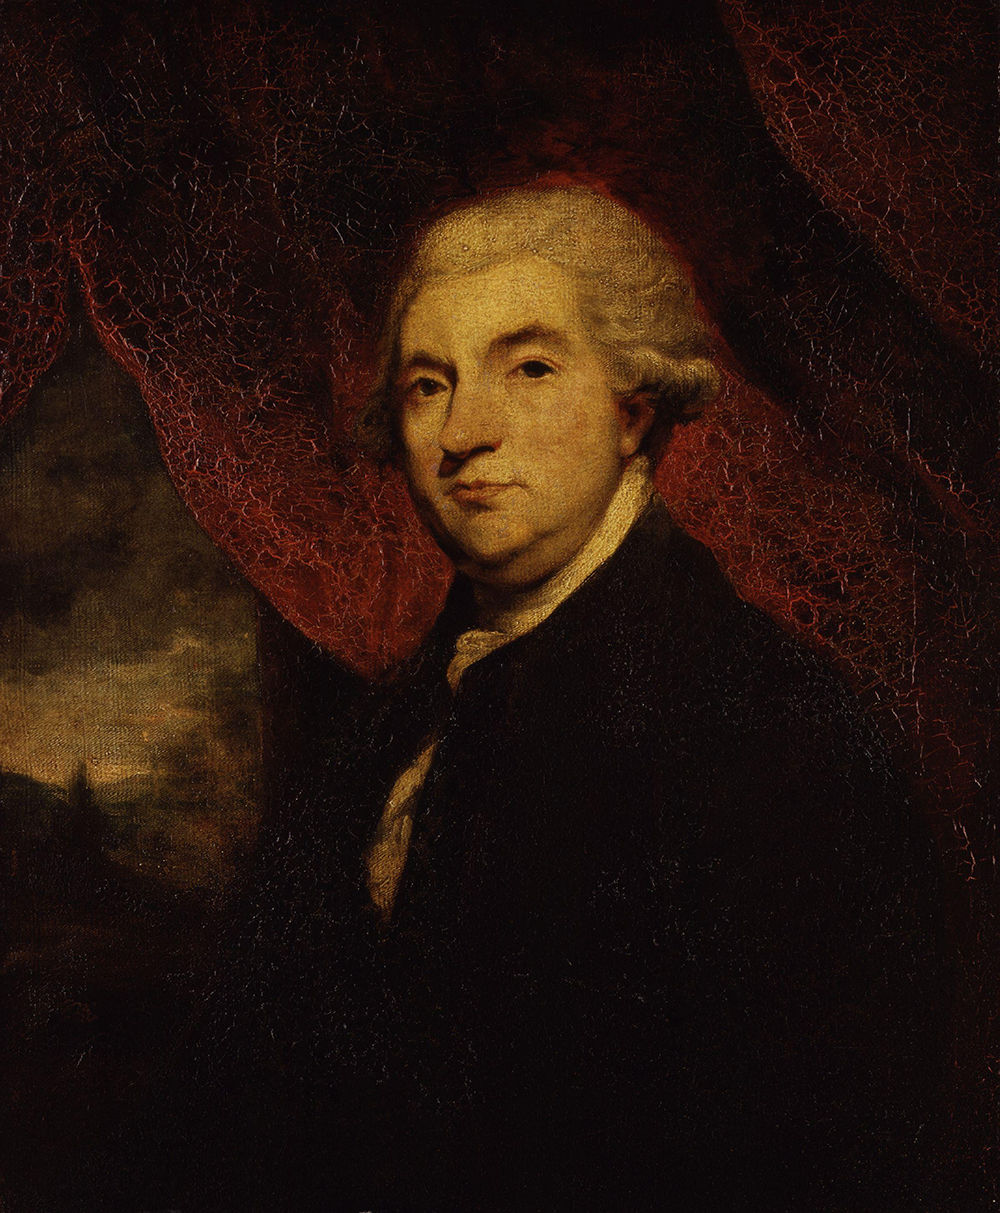 Portrait of James Boswell, by Sir Joshua Reynolds, 1785. National Portrait Gallery, London.